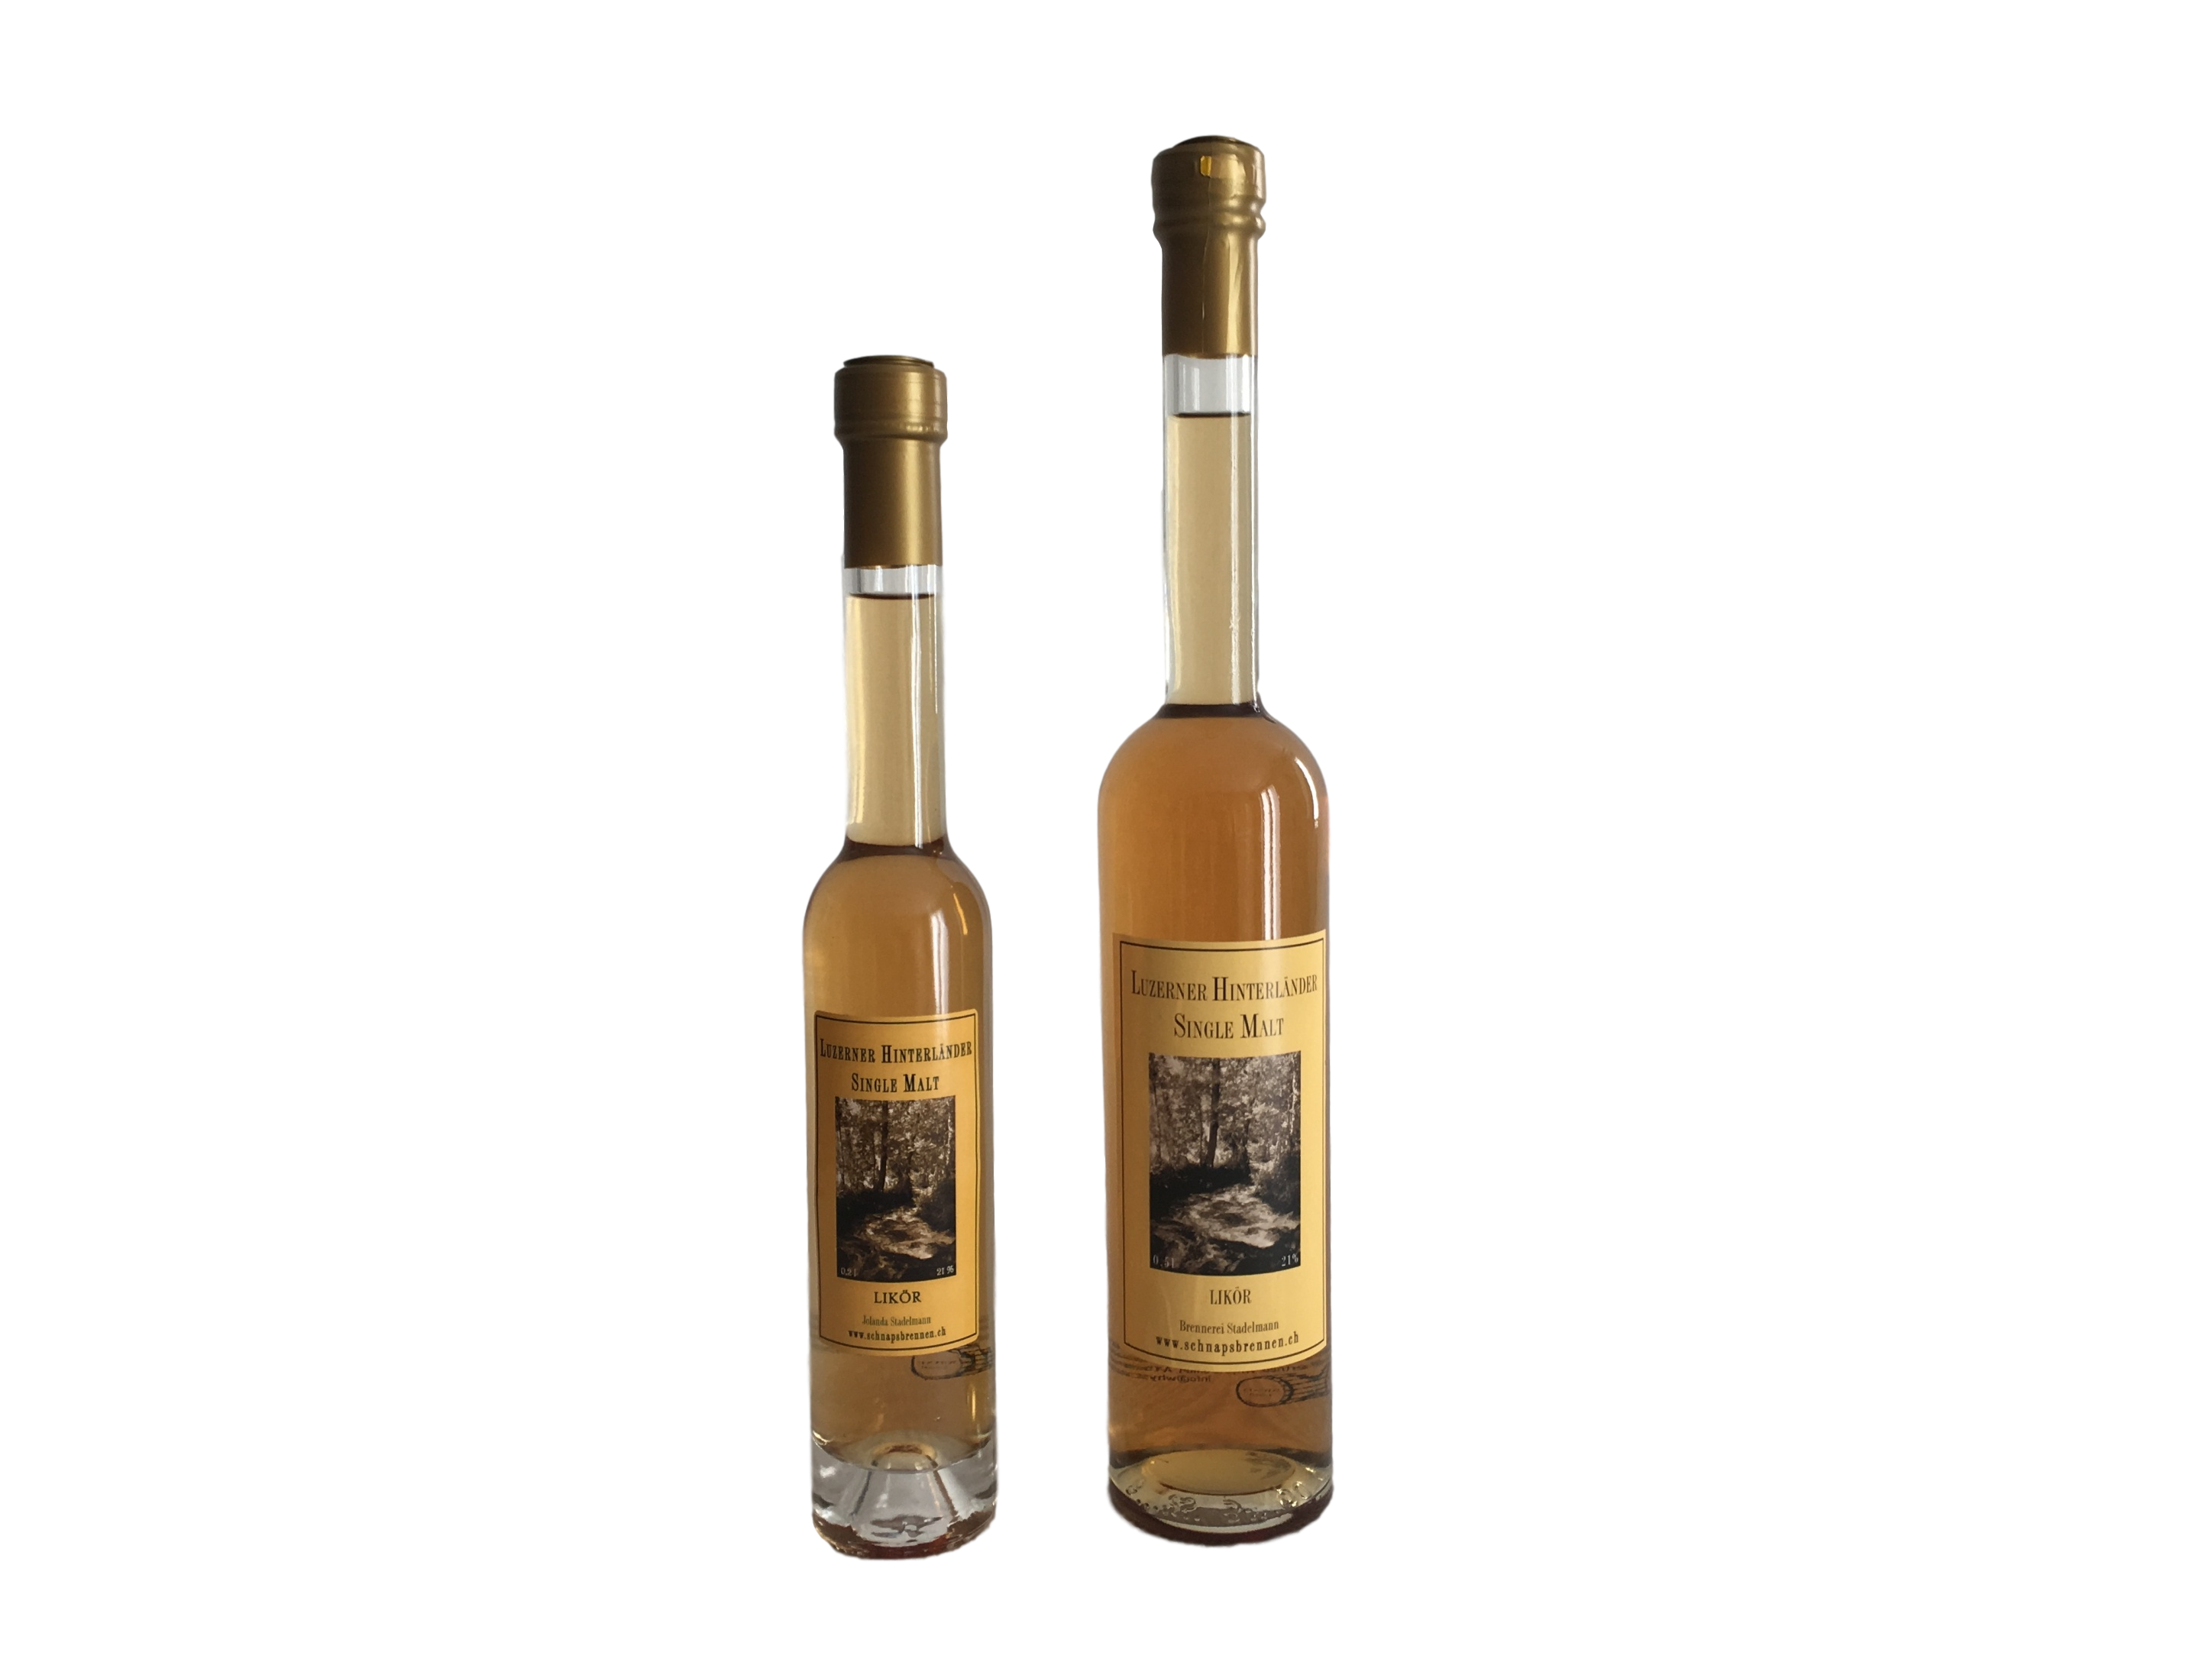 Luzerner Hinterländer Single Malt Likör